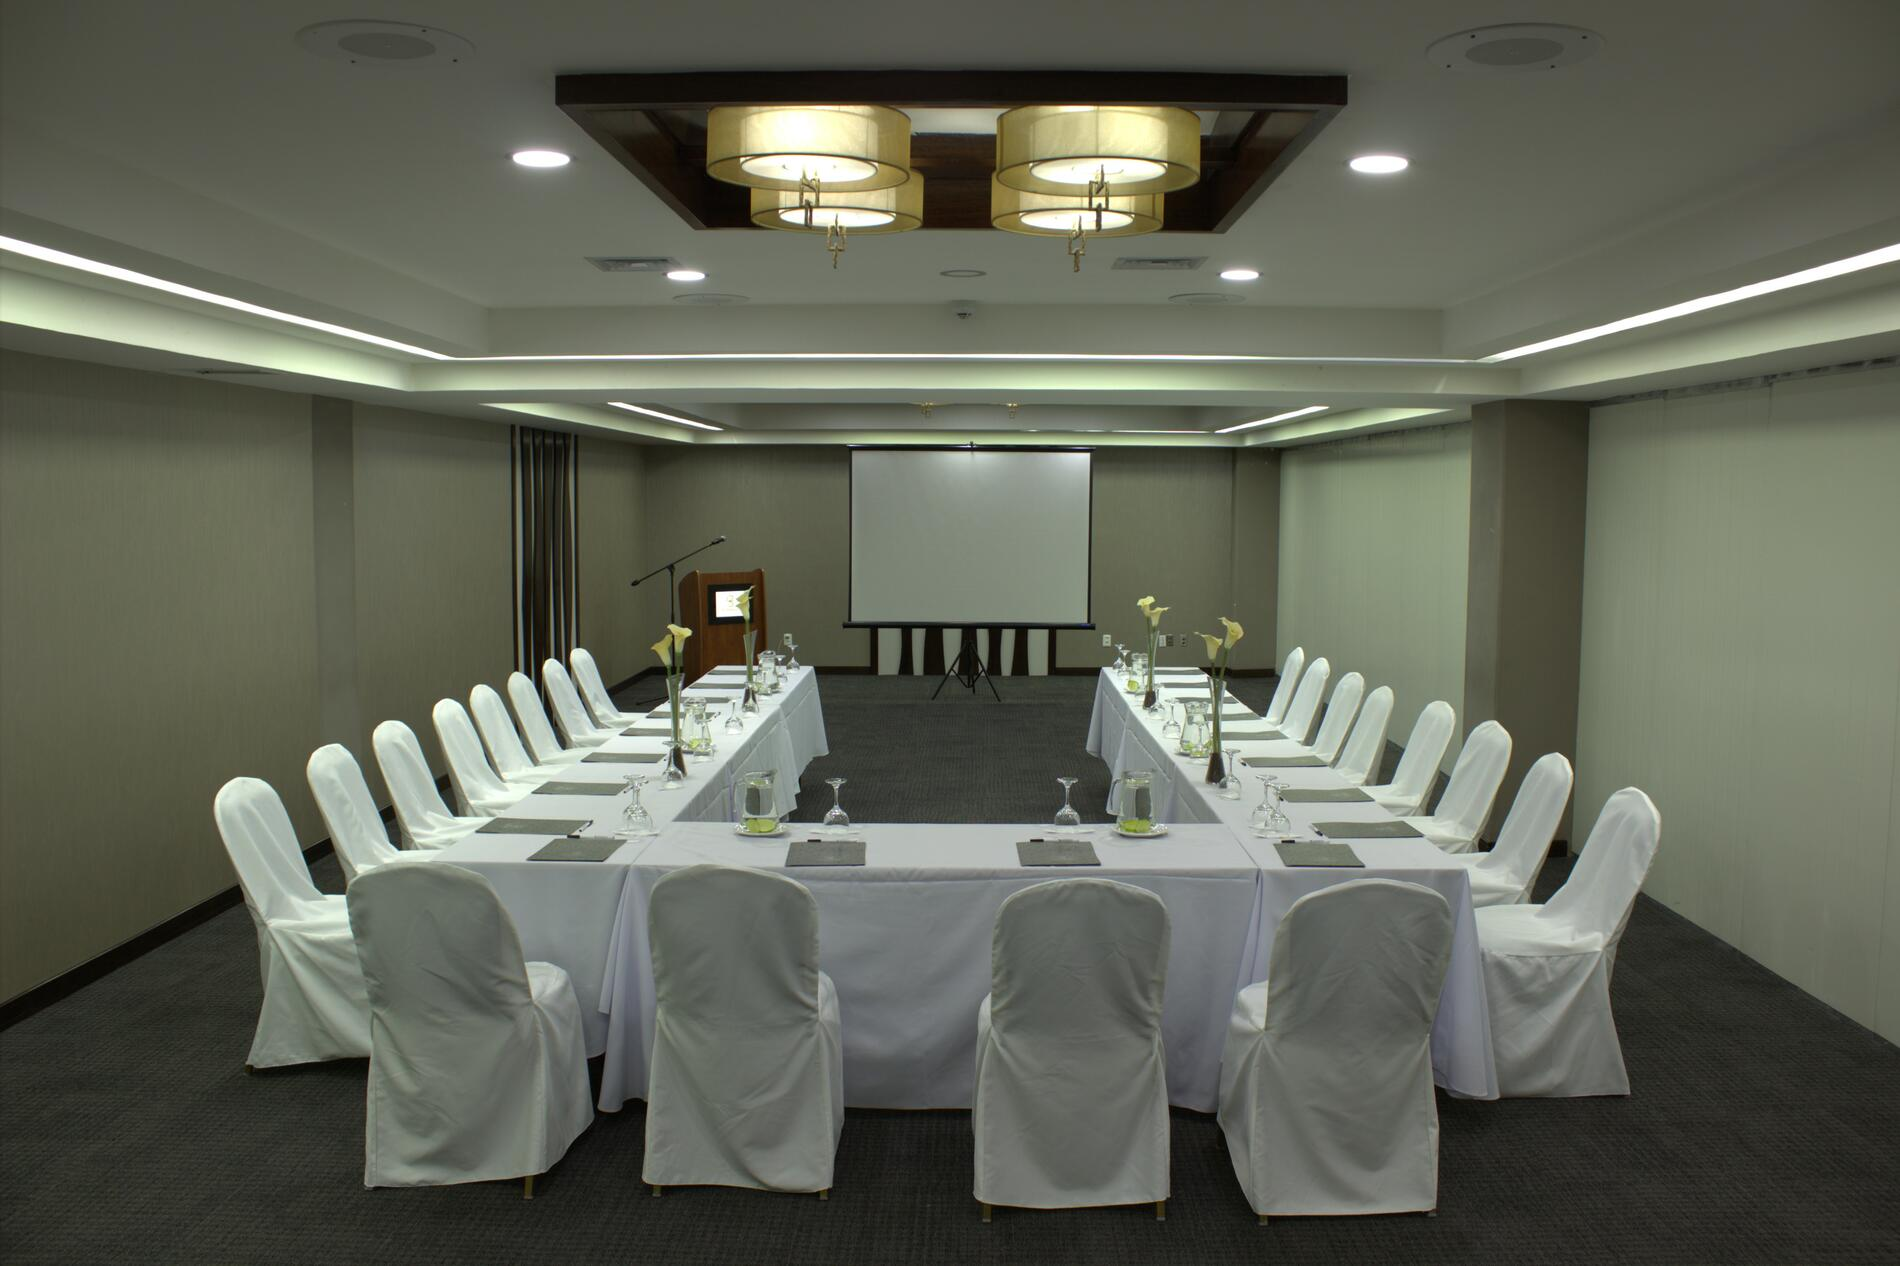 Meeting Room Set up in U Shape